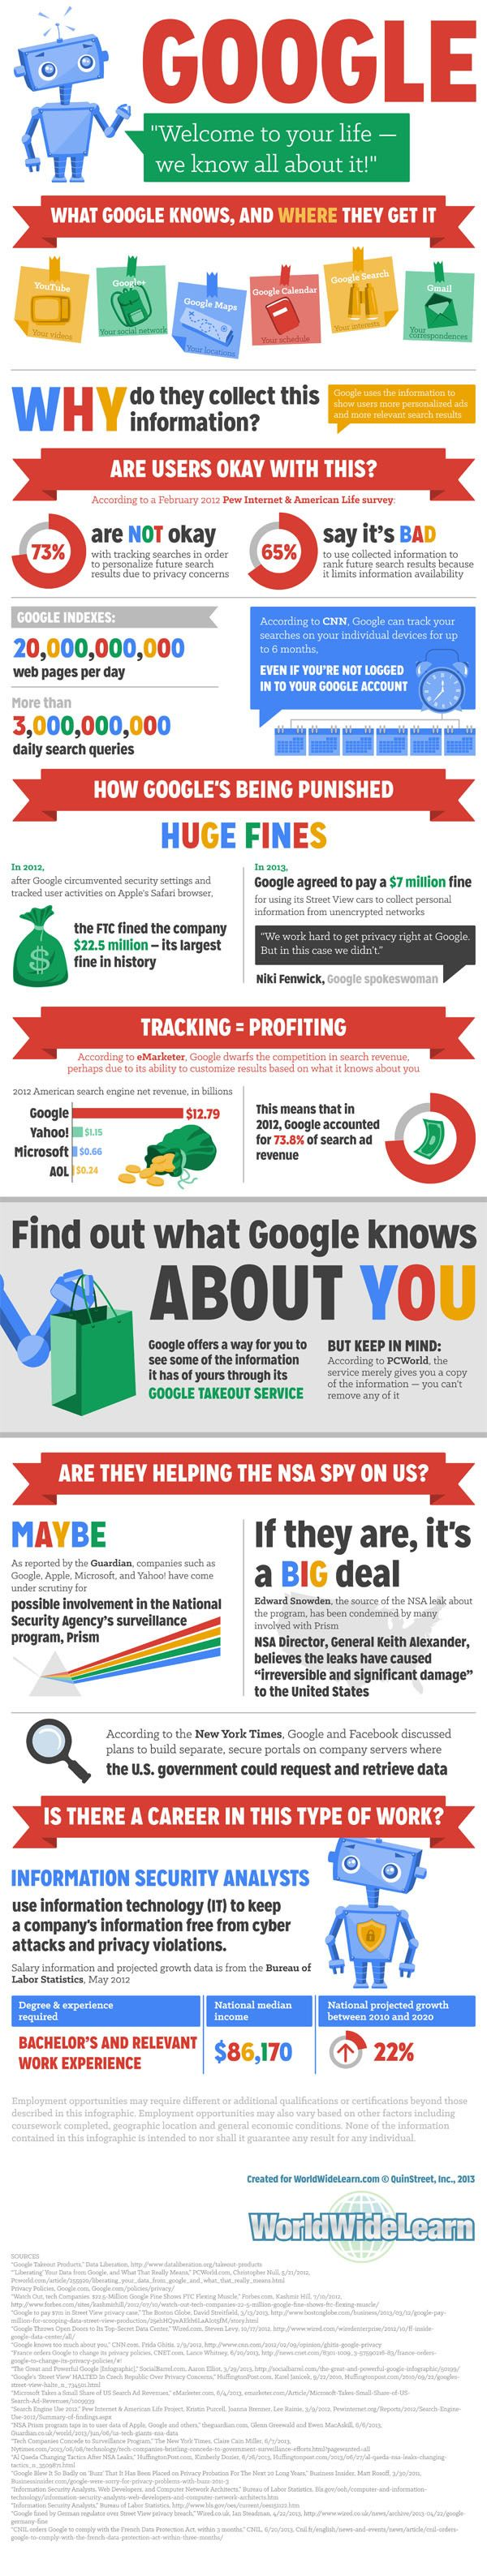 what google knows and where they get it infographic